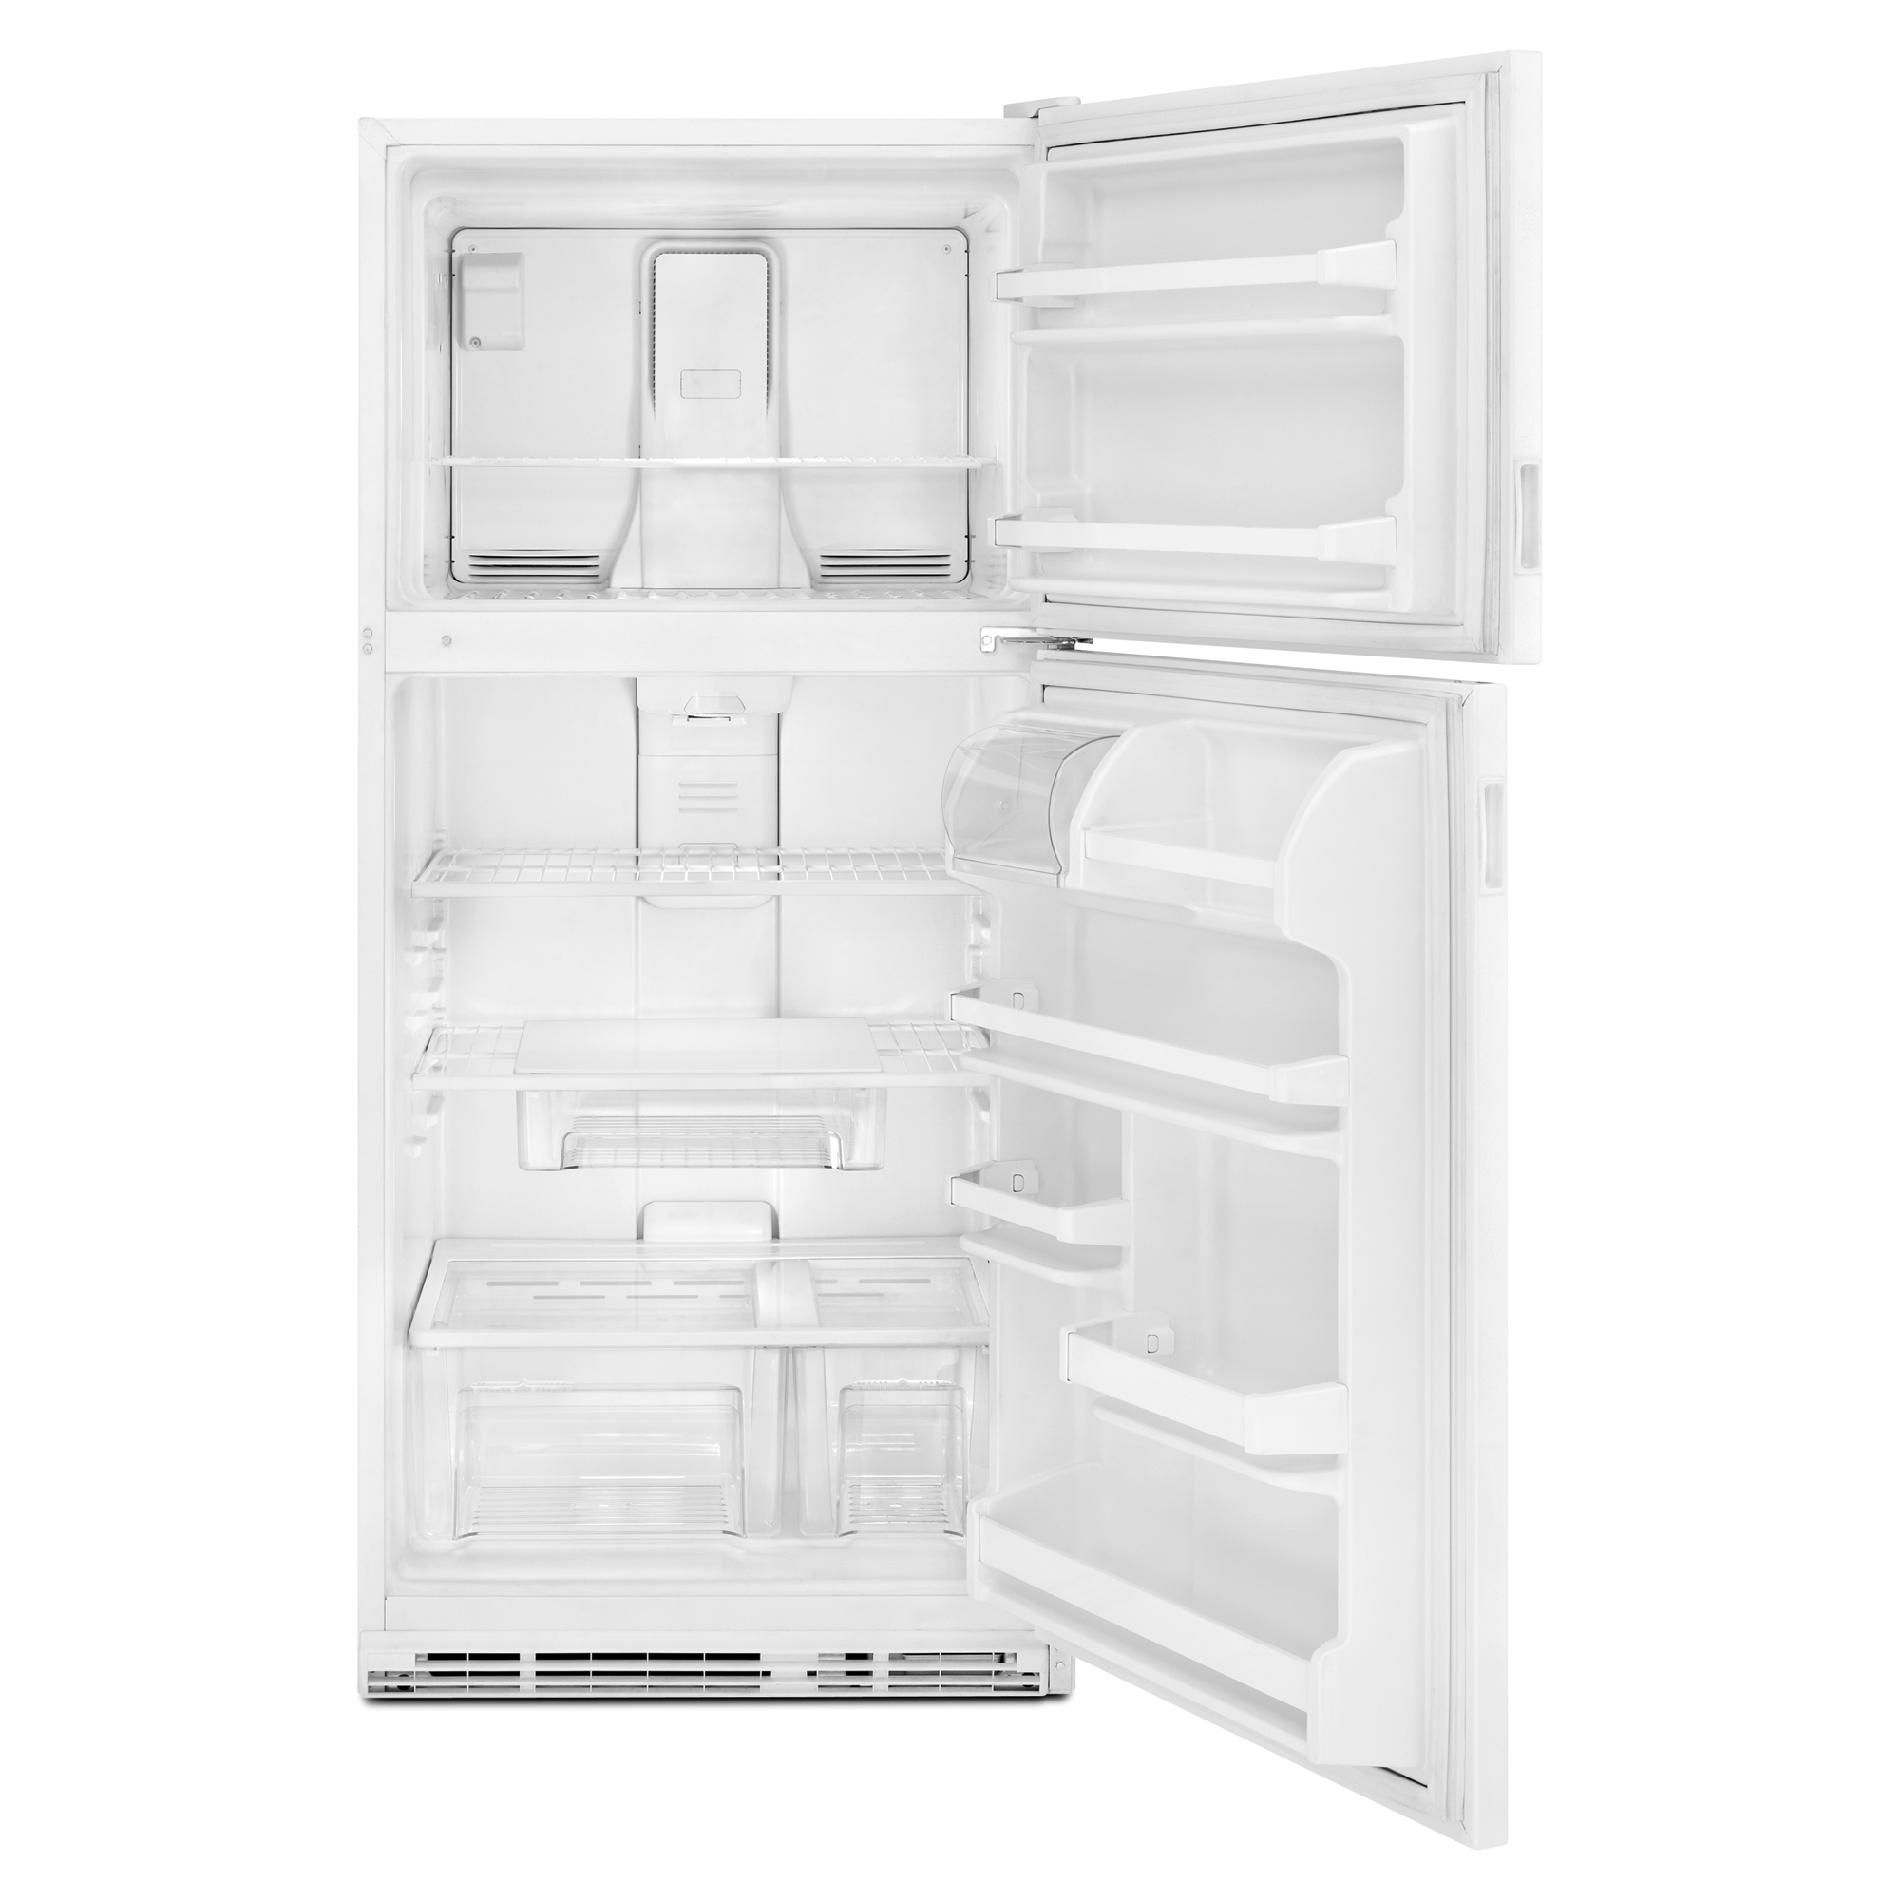 Kenmore 18.1 cu. ft. Top-Freezer Refrigerator, Right Hinge, Non-Ice